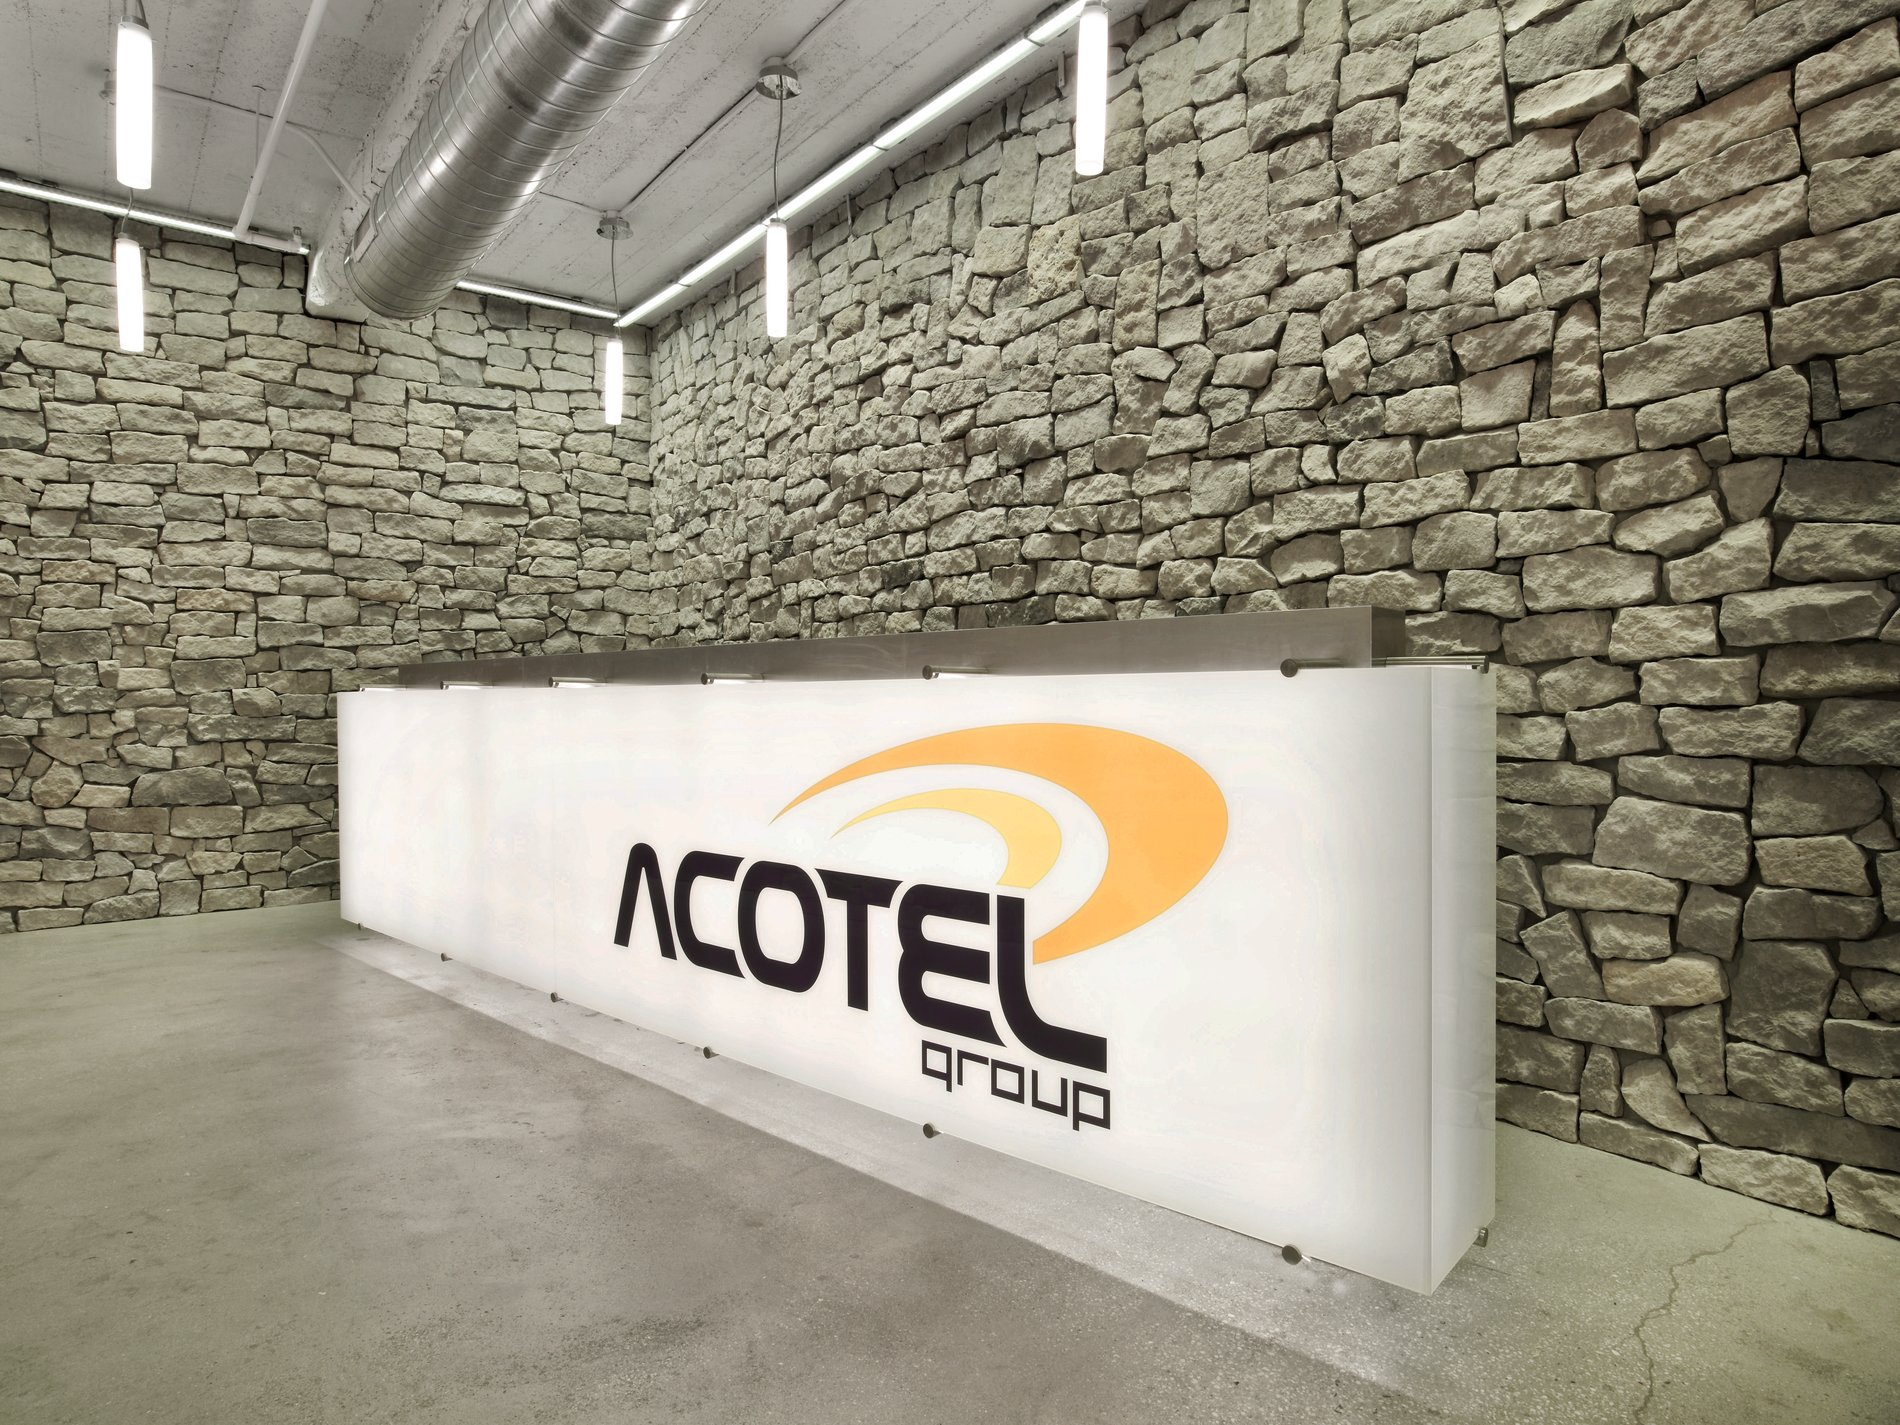 https://www.spectorgroup.com/wp-content/uploads/2018/07/Acotel-NYC-3.jpg